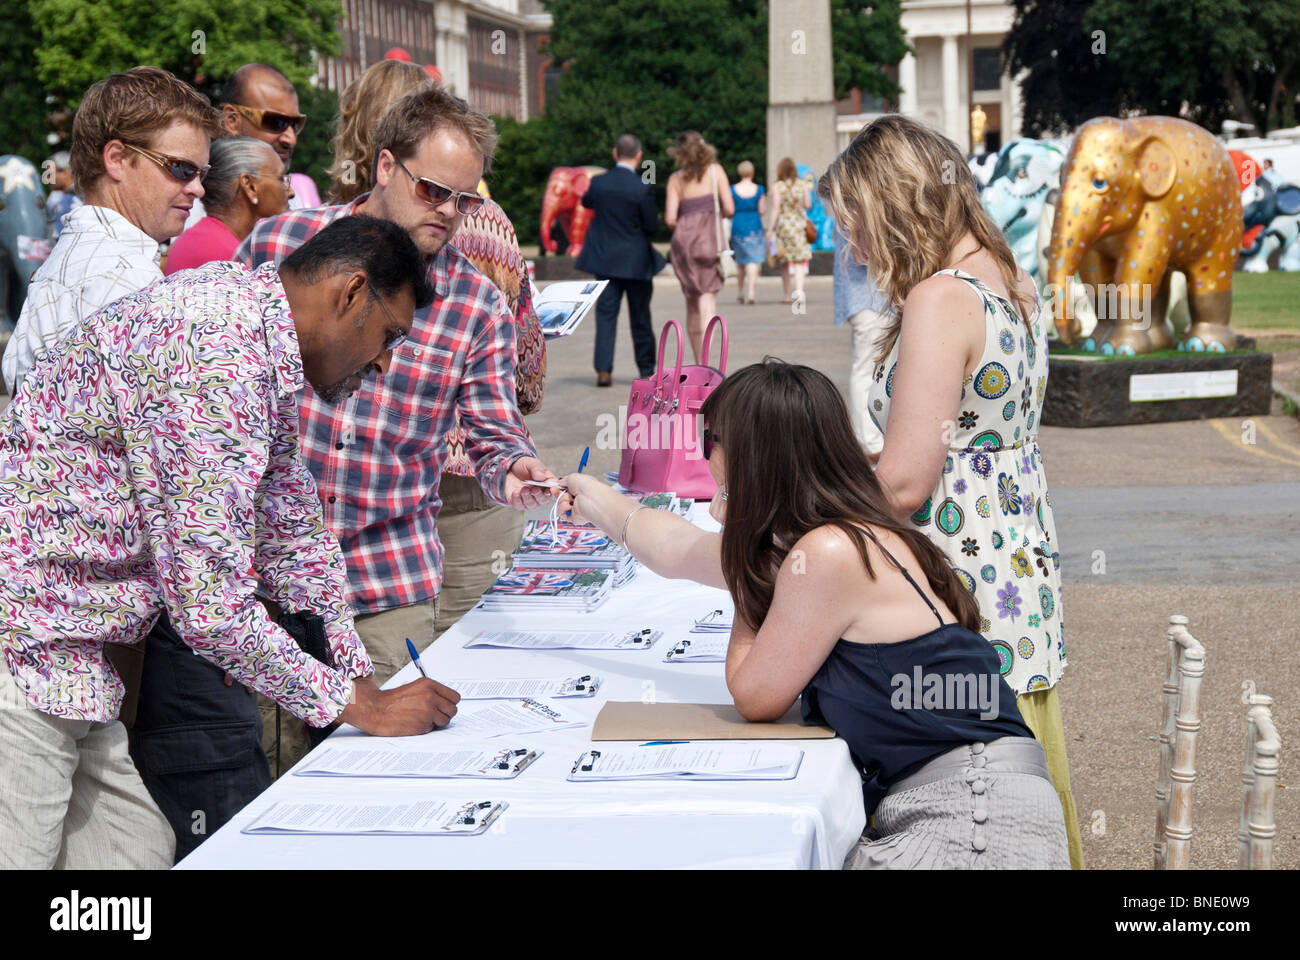 DURING THE CHARITY EVENT PUBLIC SIGNING THE SUPPORT DOCUMENTS - Stock Image